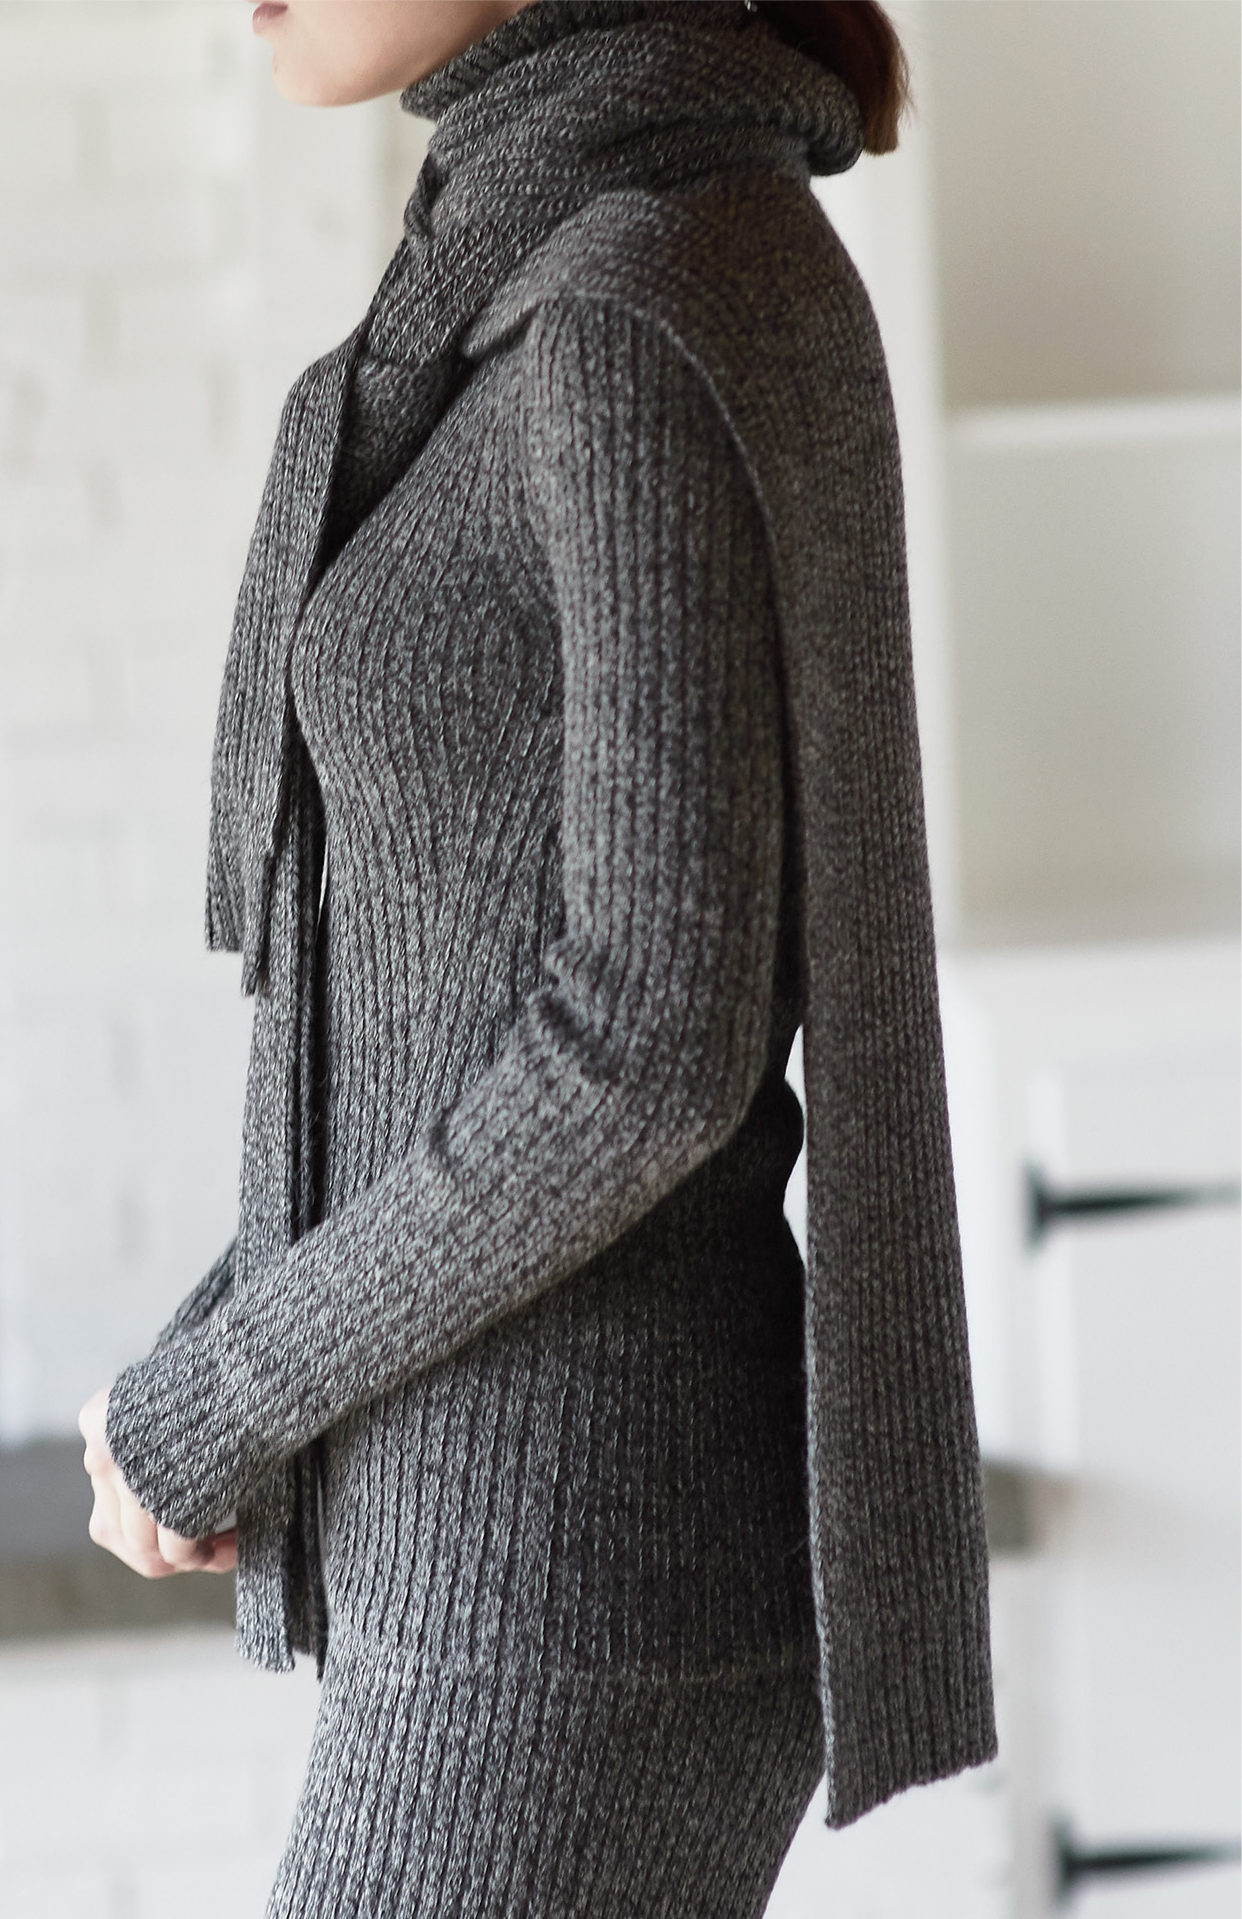 Combining contemporary design with traditional Andean knitting techniques, Eleven Six      knit dressing. As a mother, wife, and entrepreneur, Catherine designs for the modern woman in need of a versatile wardrobe to suit a lifestyle   of work, travel and play. Inspired by Peru's rich heritage of craftsmanship in textiles, with modern     Alpaca yarns. Worn alone or mix and matched     a relaxed femininity that is underscored by a signature neutral palette. Accented by seasonal tones, creams and a range of grey melanges, from the palest moulin to the darkest graphite, are accompanied by rich oatmeals and camels.